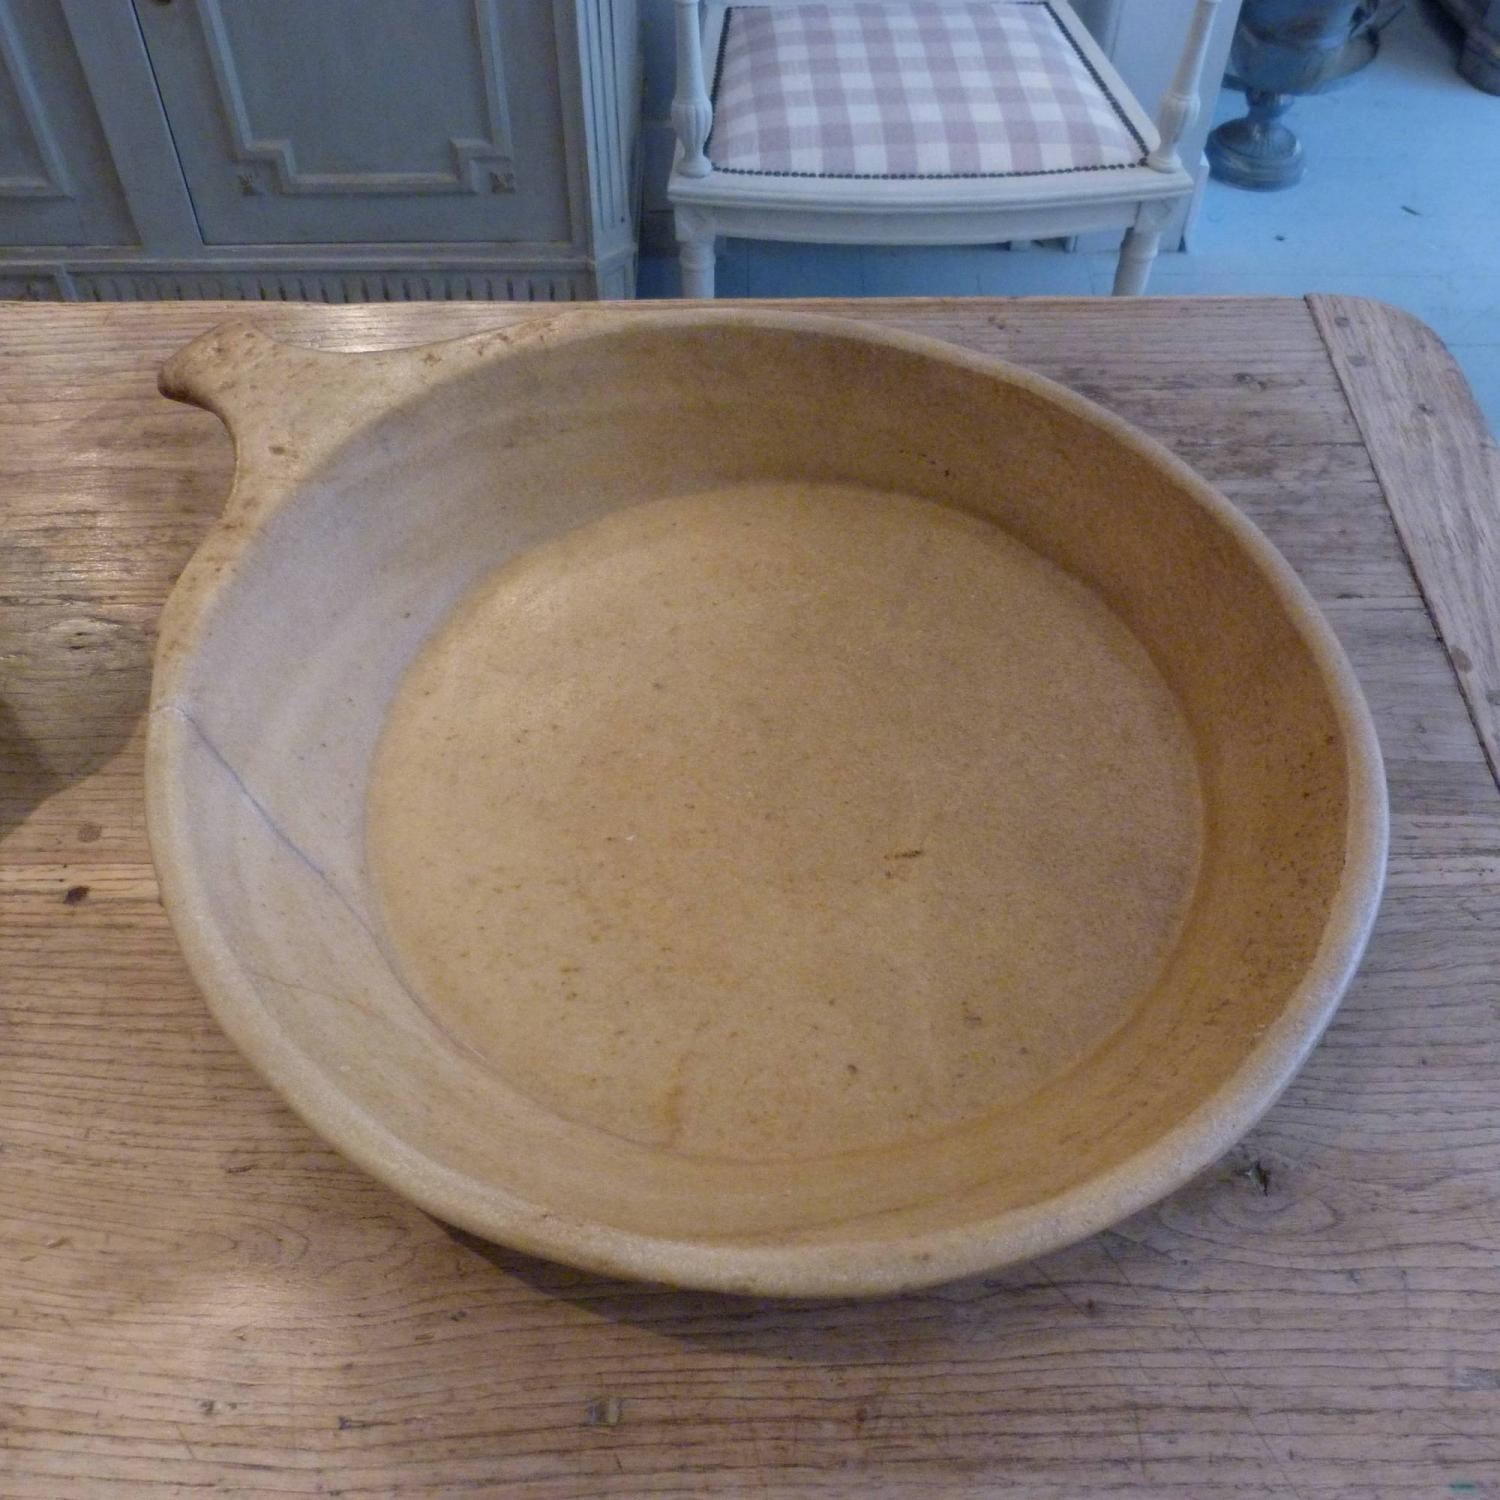 EXTRA LARGE RAJASTHAN MARBLE FOOD BOWL